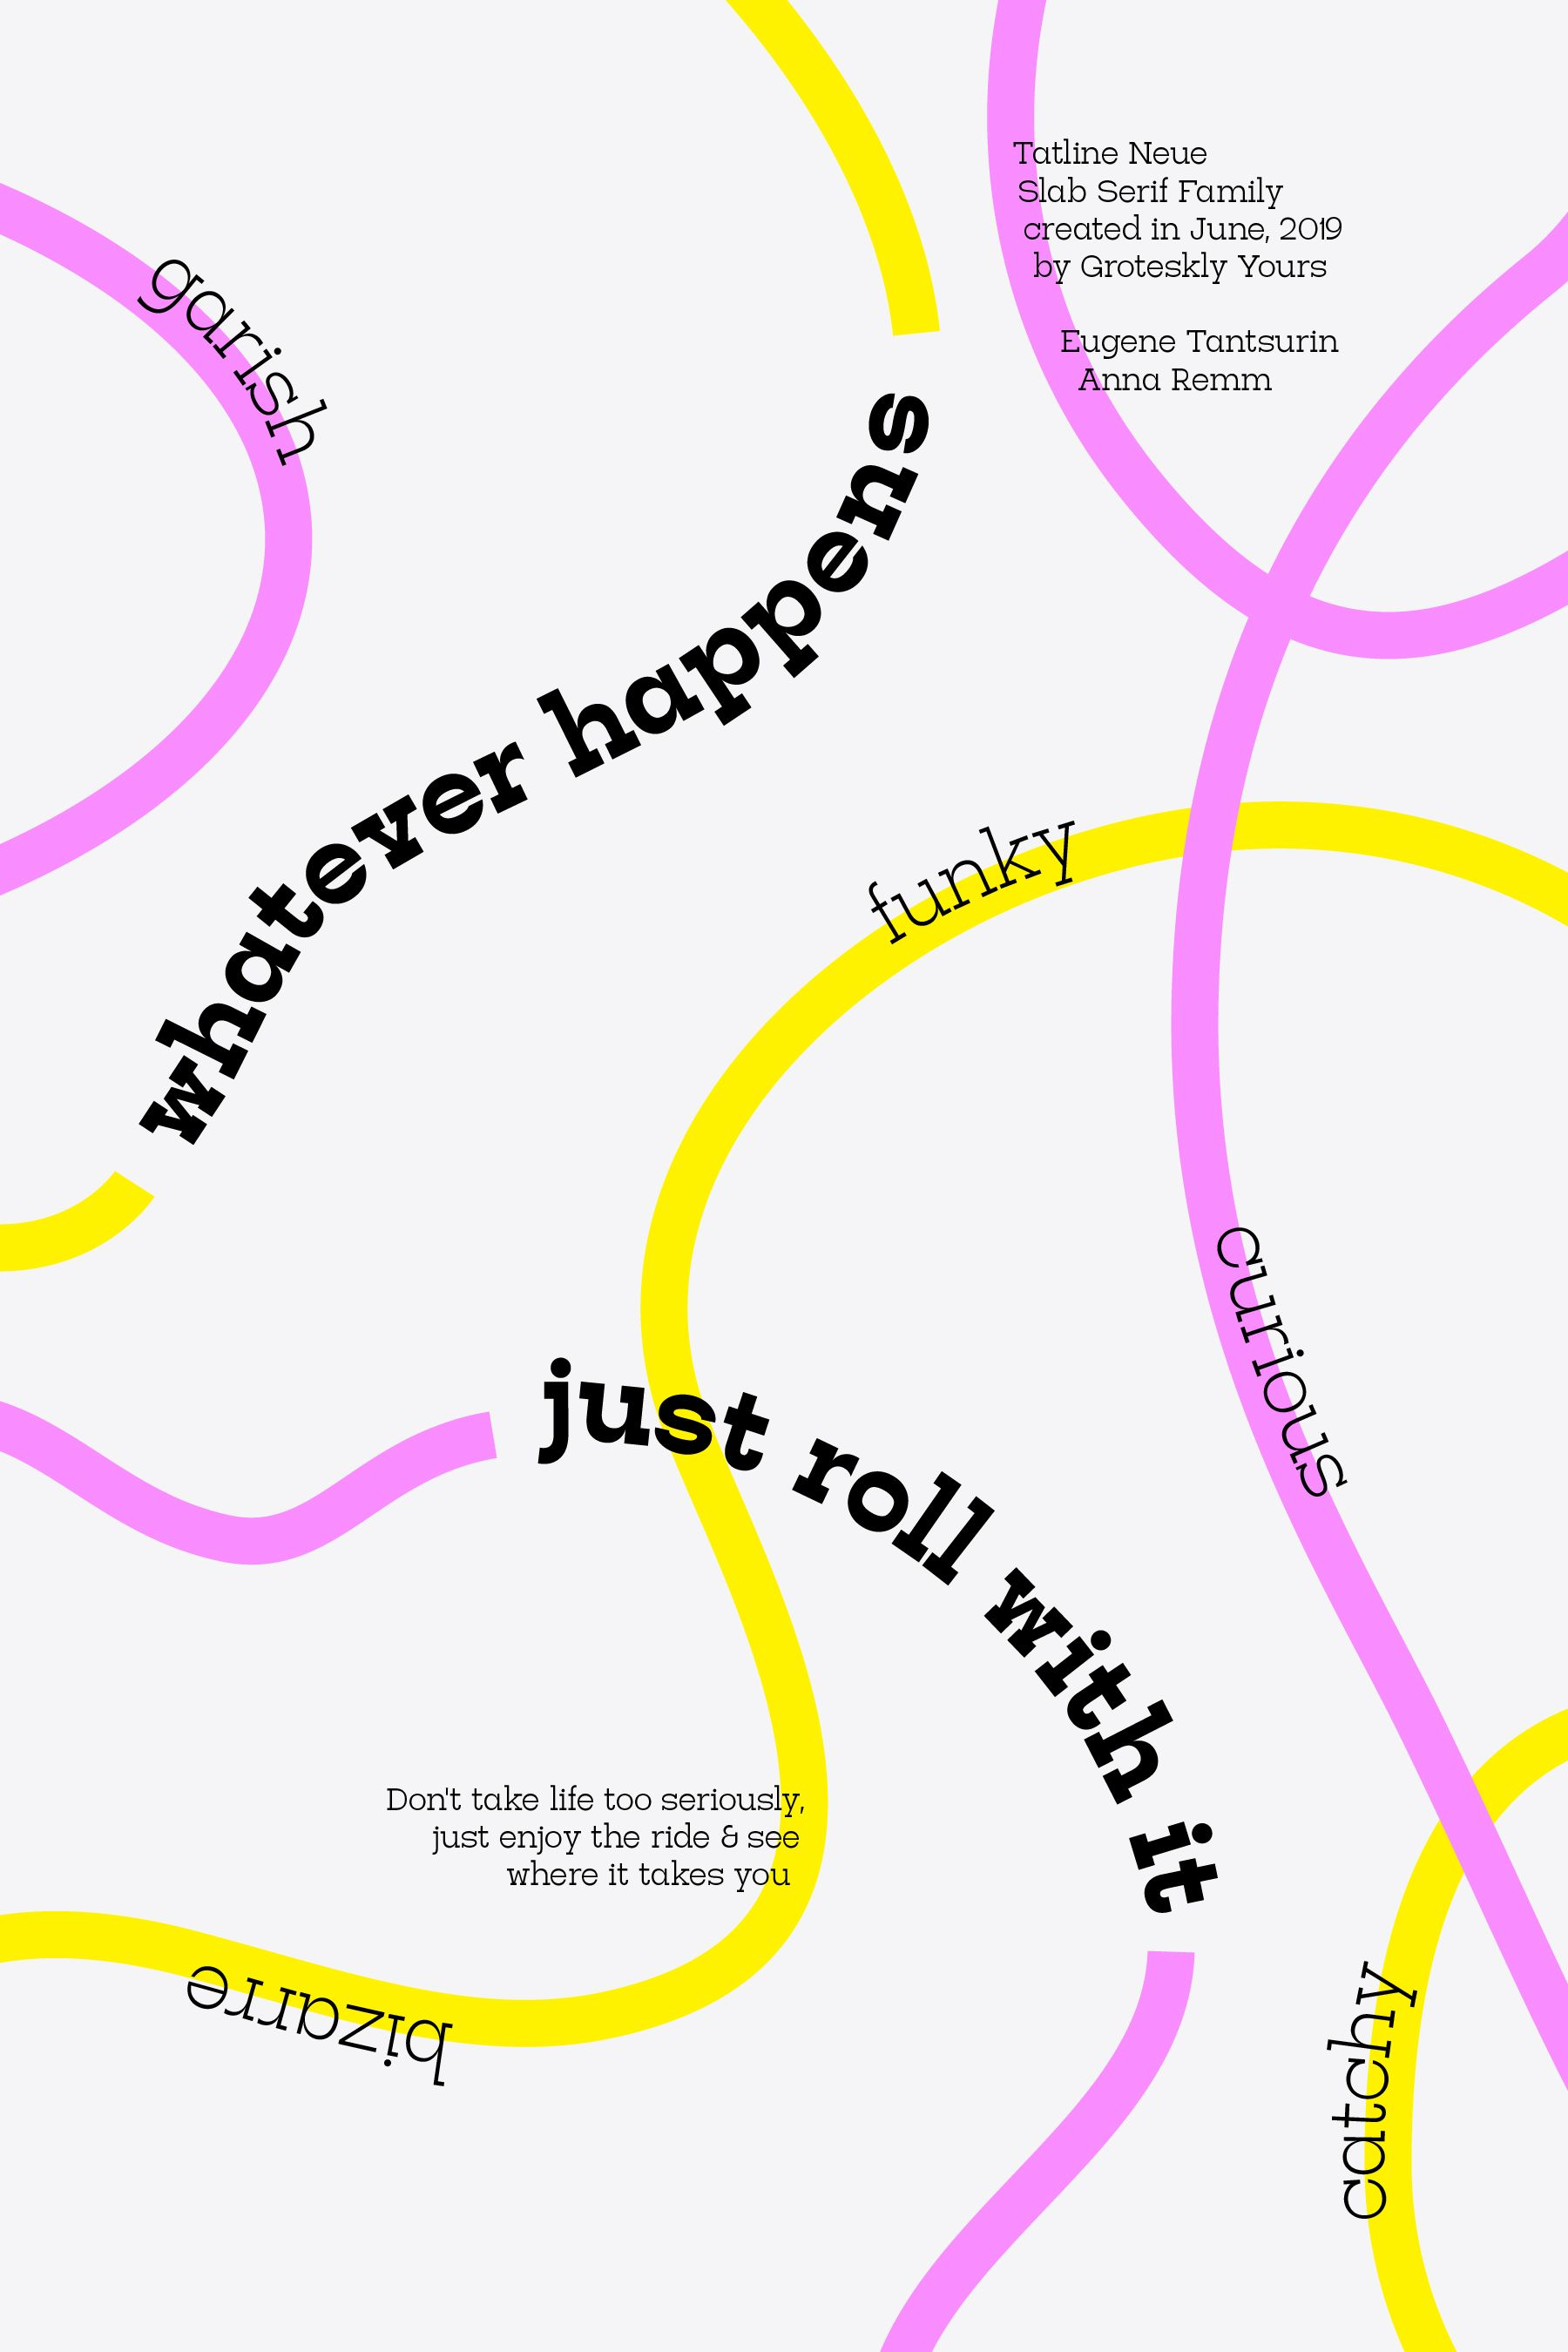 Whatever Happens Just Roll With It — Tatline Neue Slab Serif #graphicdesign